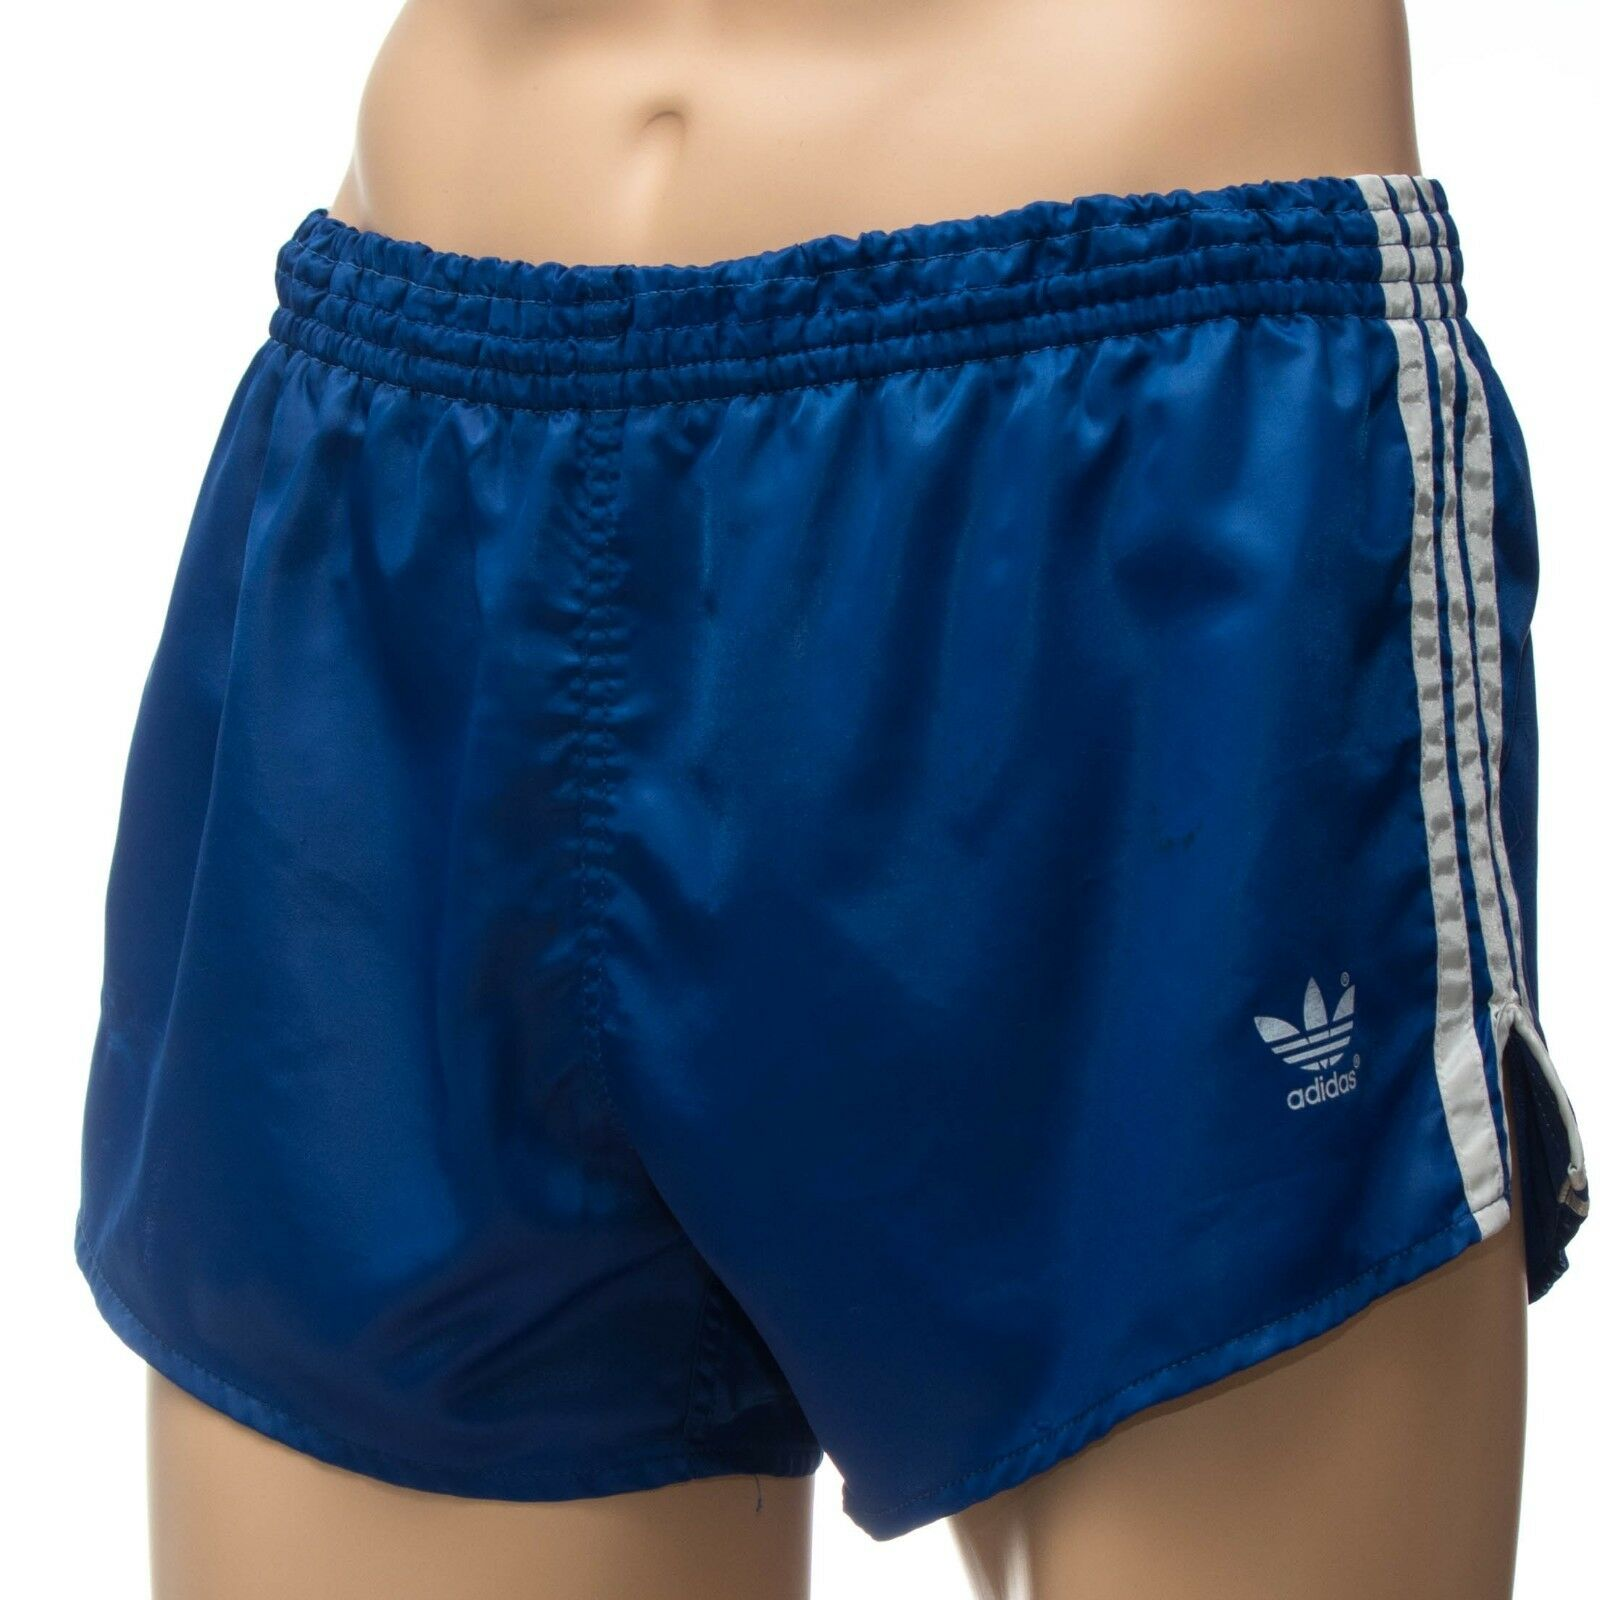 ADIDAS Glanz Nylon Vintage Shorts - Made in West-Germany - blue  Gr 6 (1477)